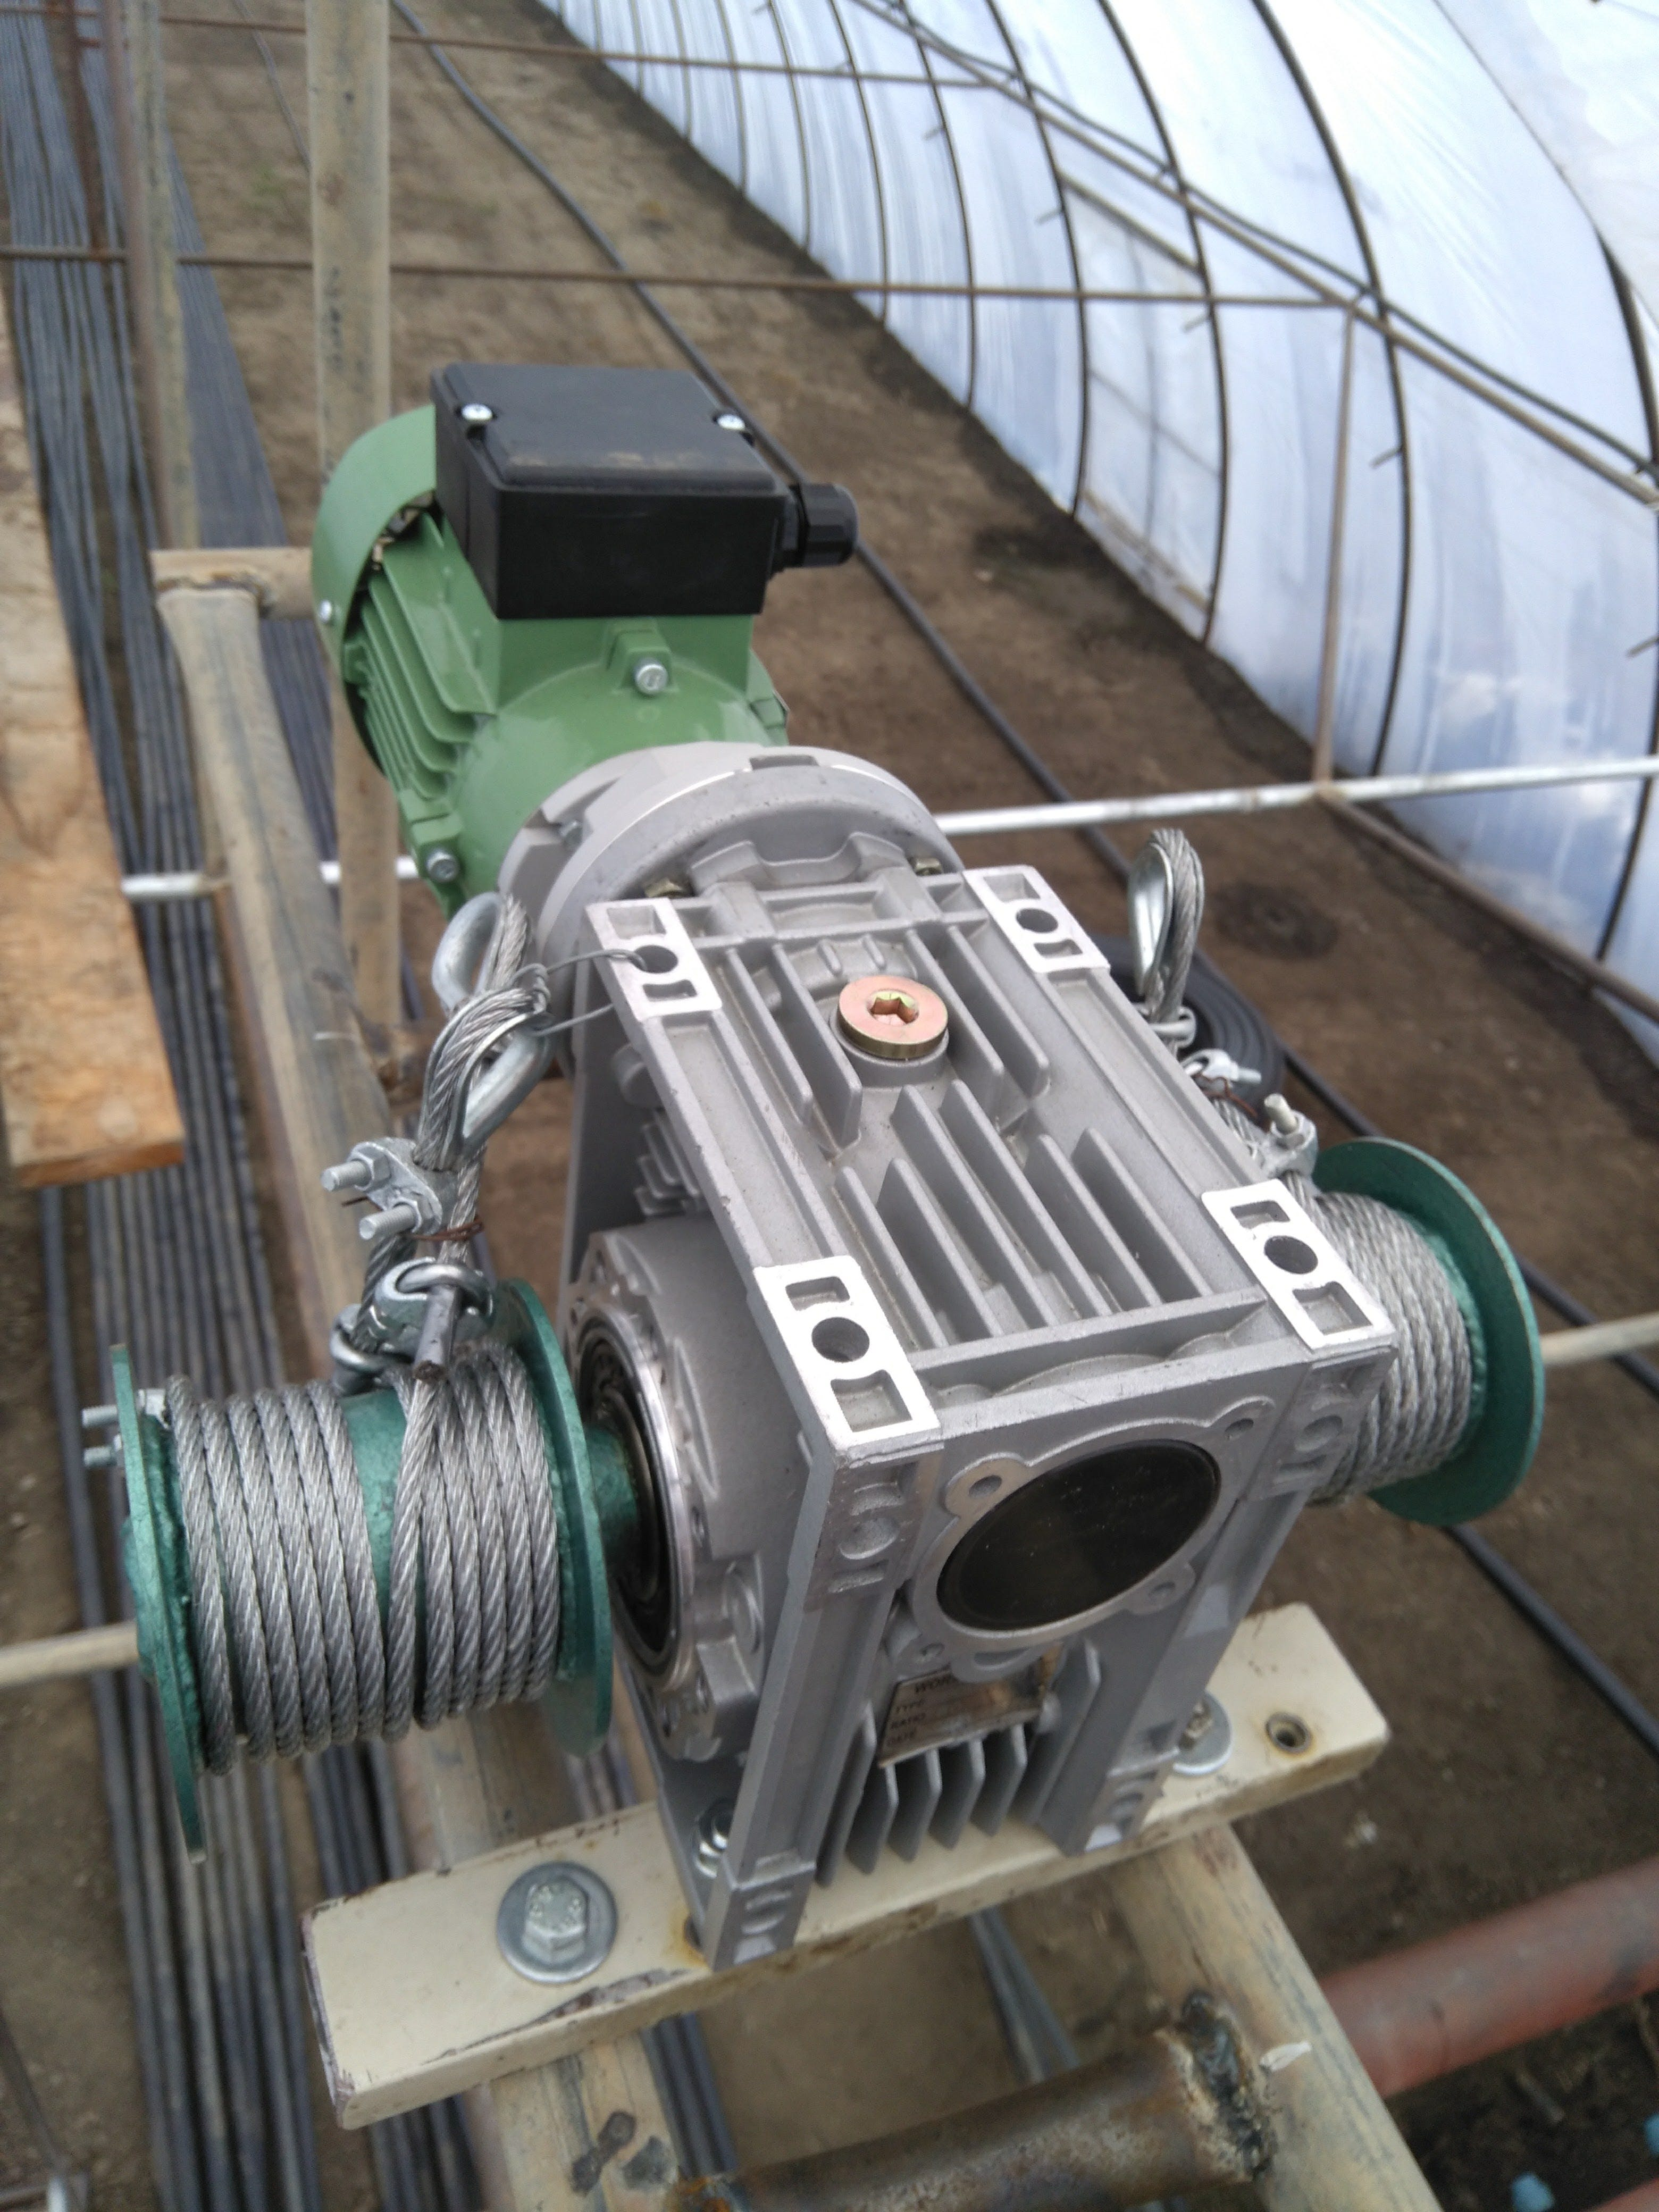 3-phase motor, worm gear unit with two drums